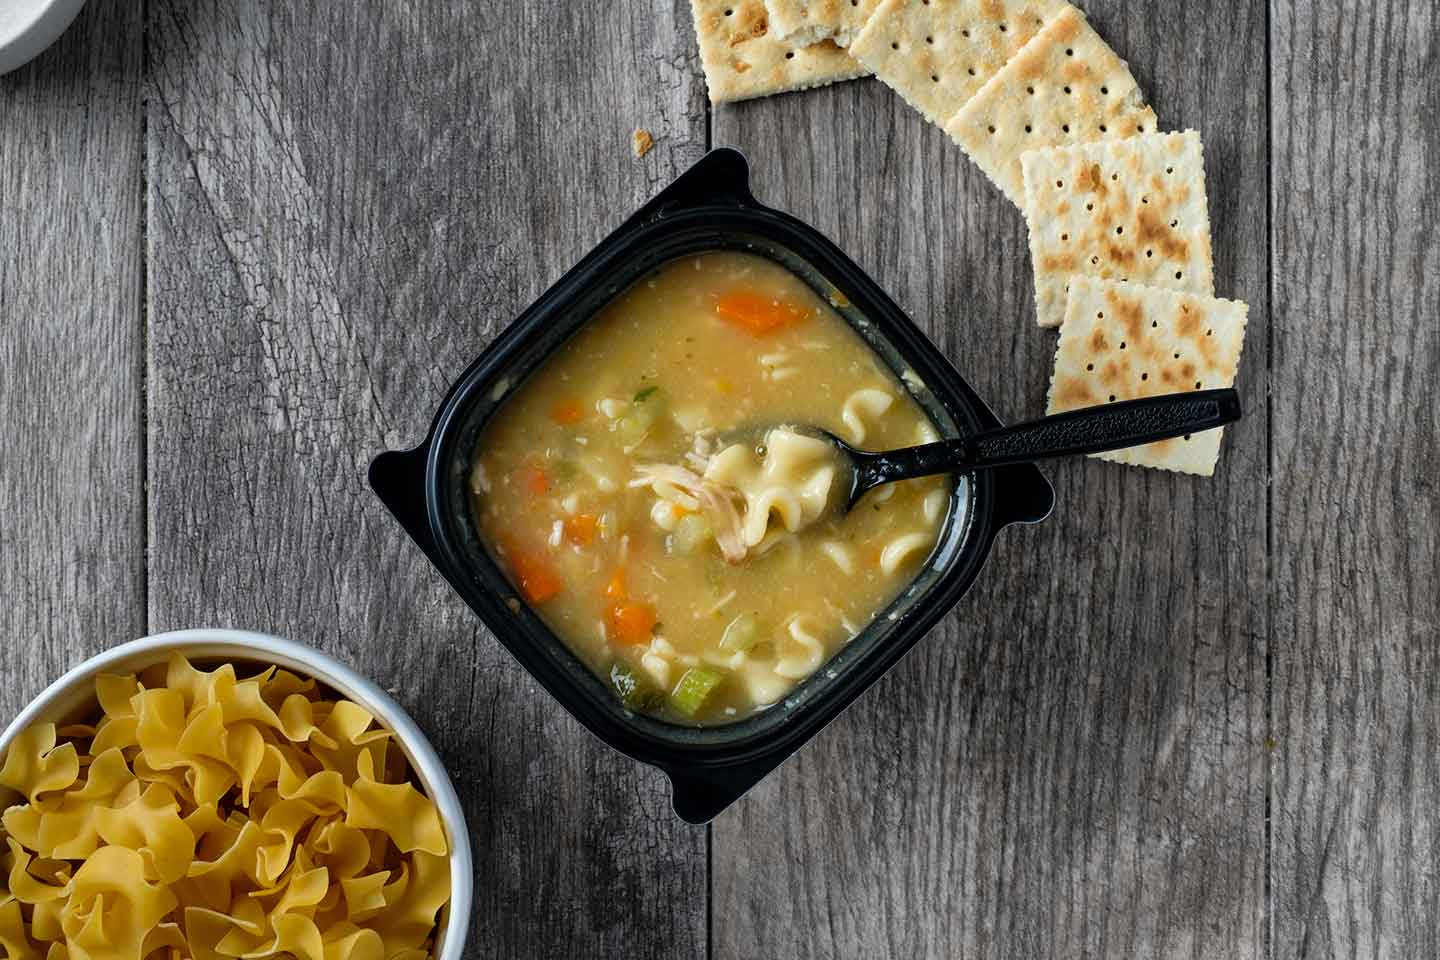 Chick-fil-A Chicken Noodle Soup in a black container on a wooden table.